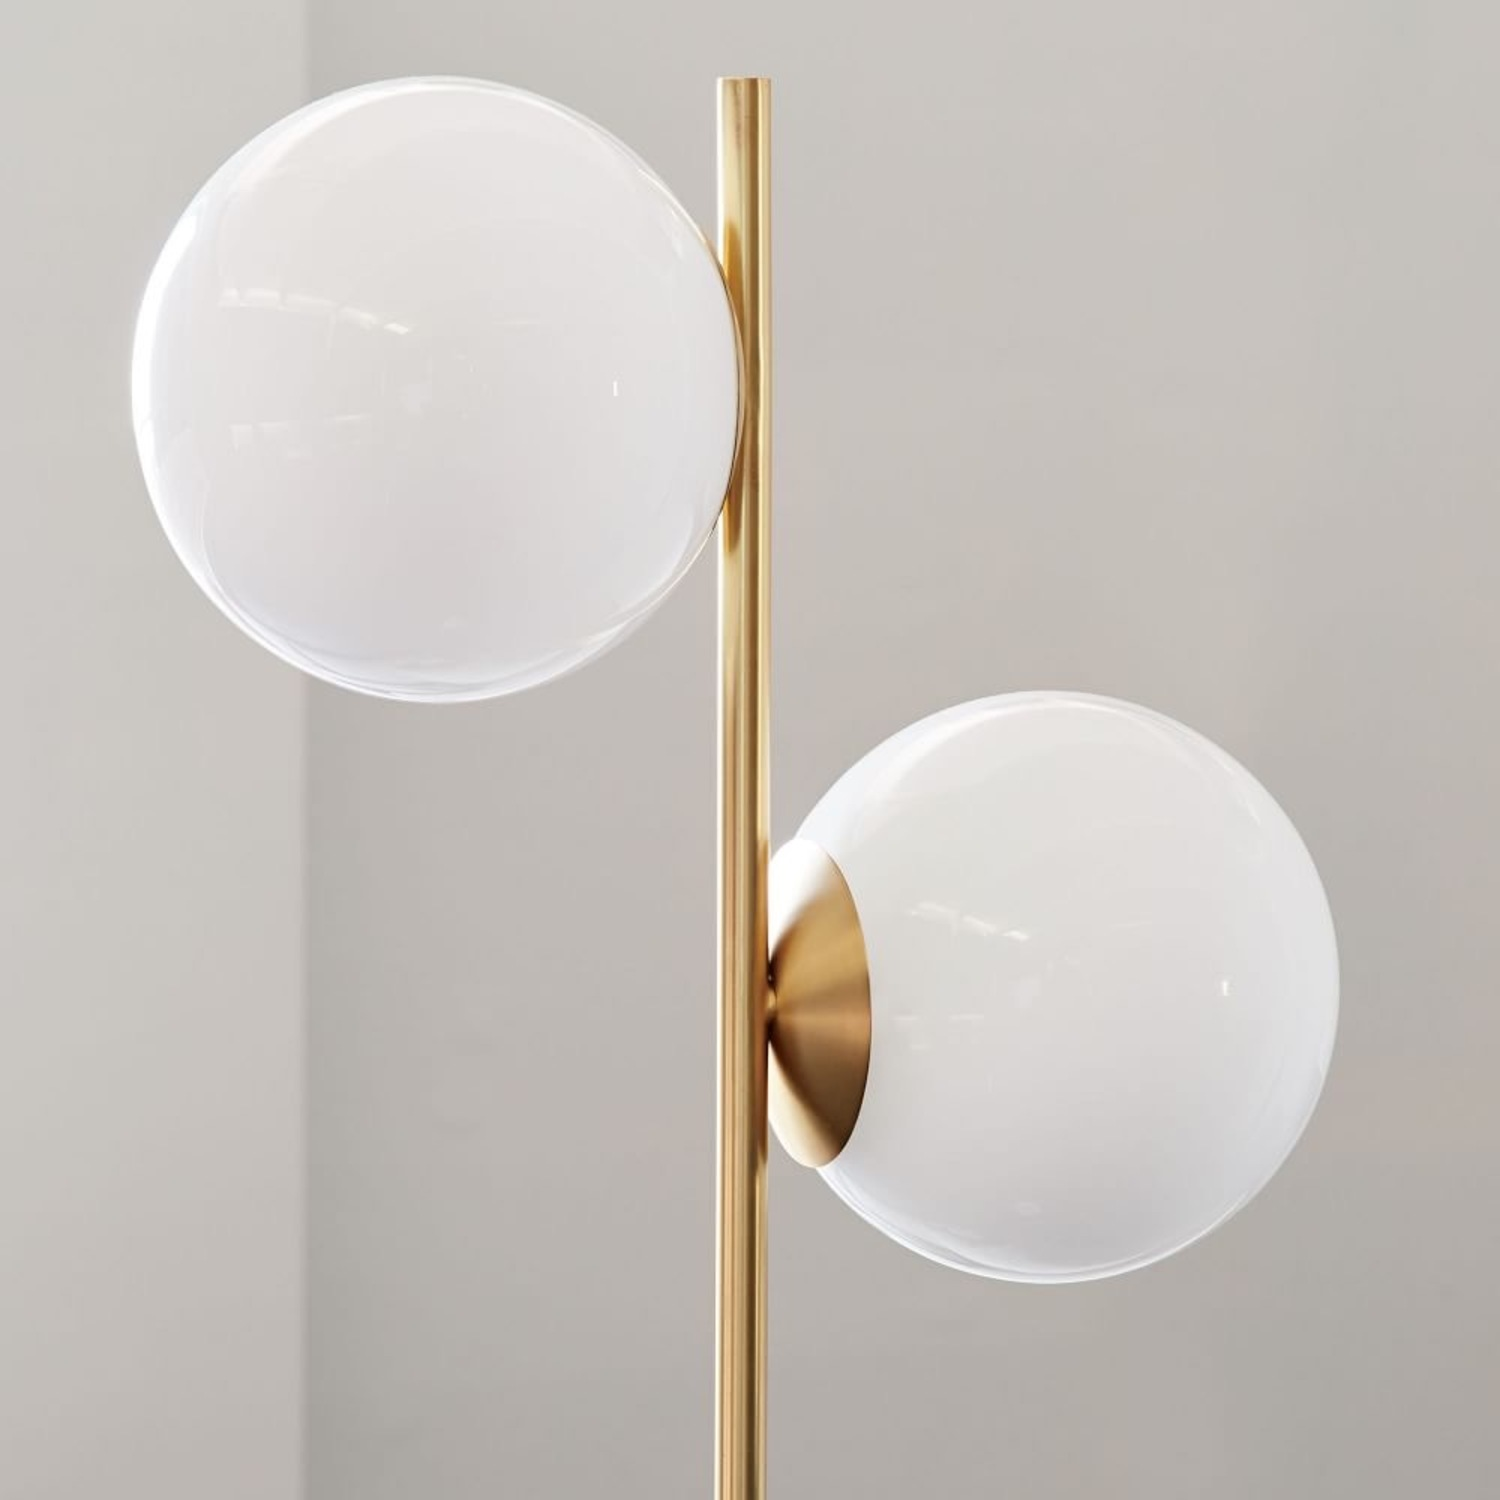 West Elm Sphere & Stem Floor Lamp - image-2